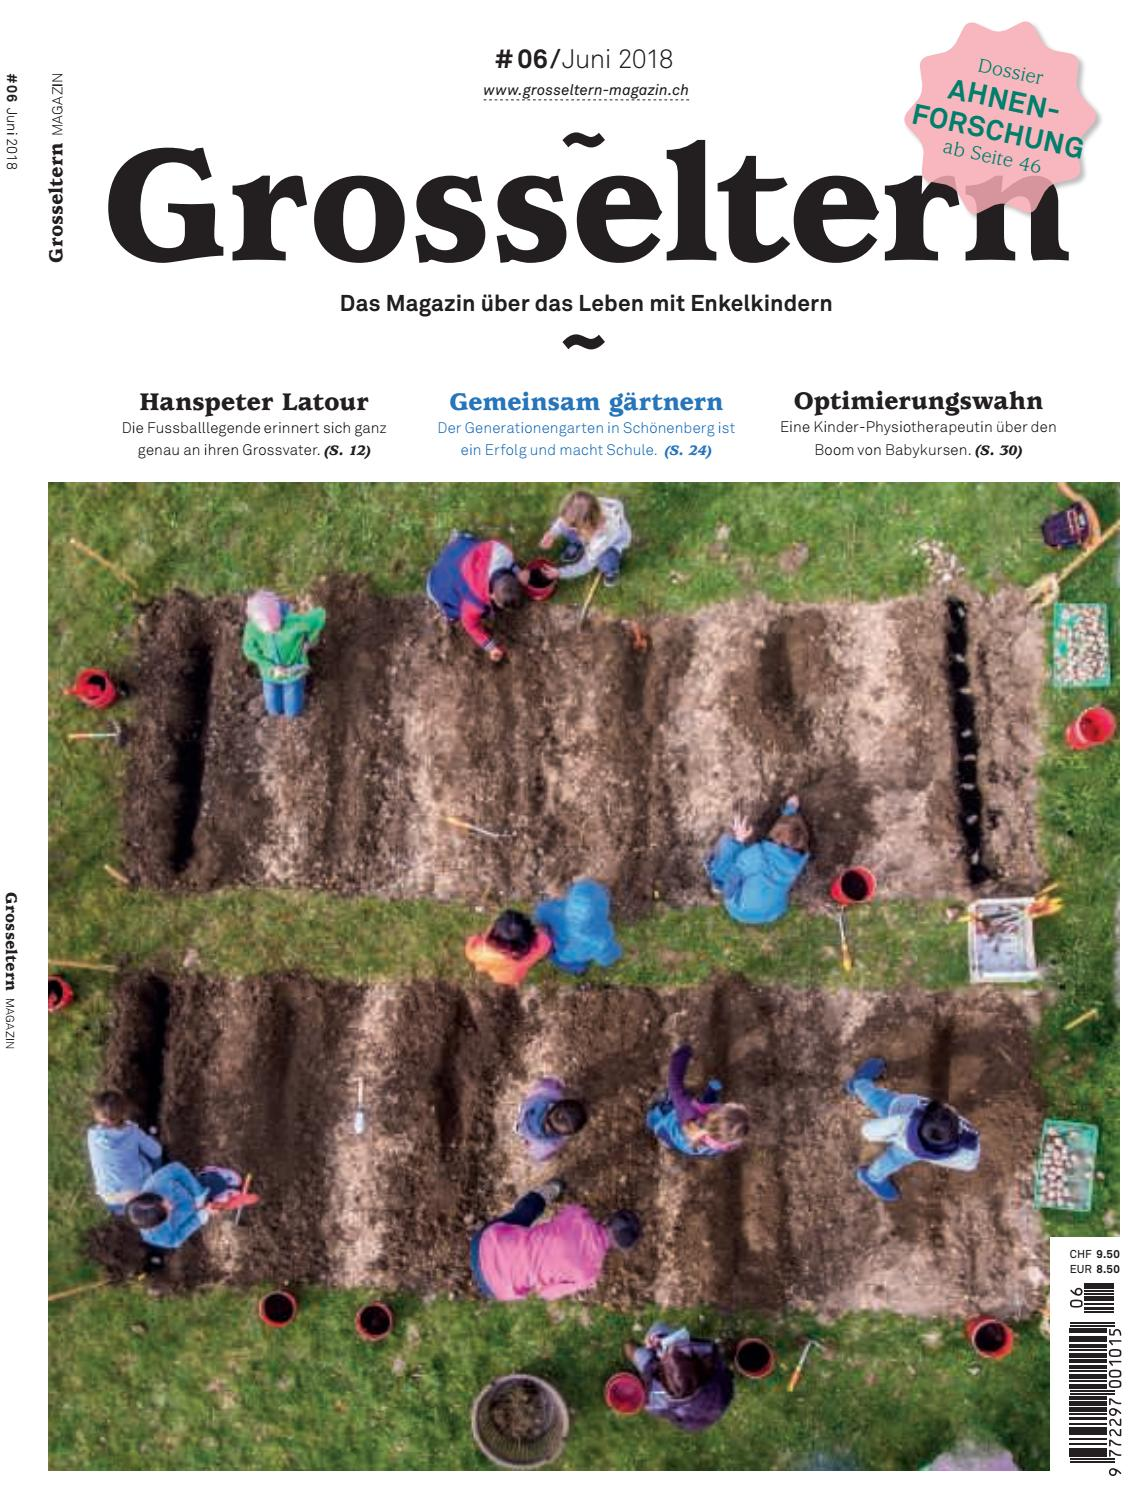 Grosseltern 06 2018 72dpi by Grosseltern-Magazin - issuu